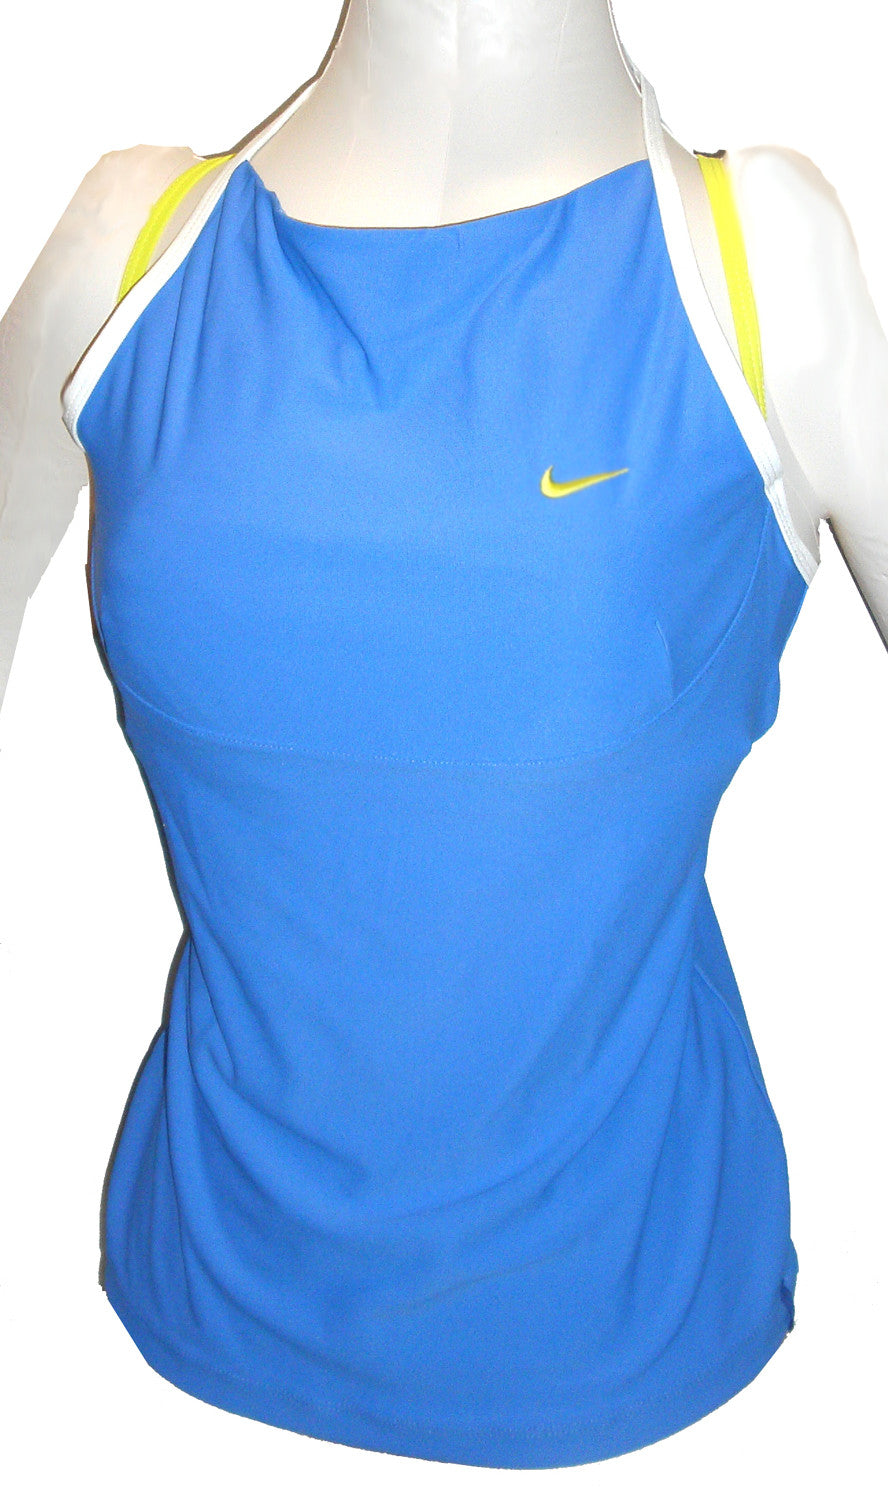 NIKE FIT DRY WOMENS SHARAPOVA TENNIS TANK TOP BLUE Only 2 Left